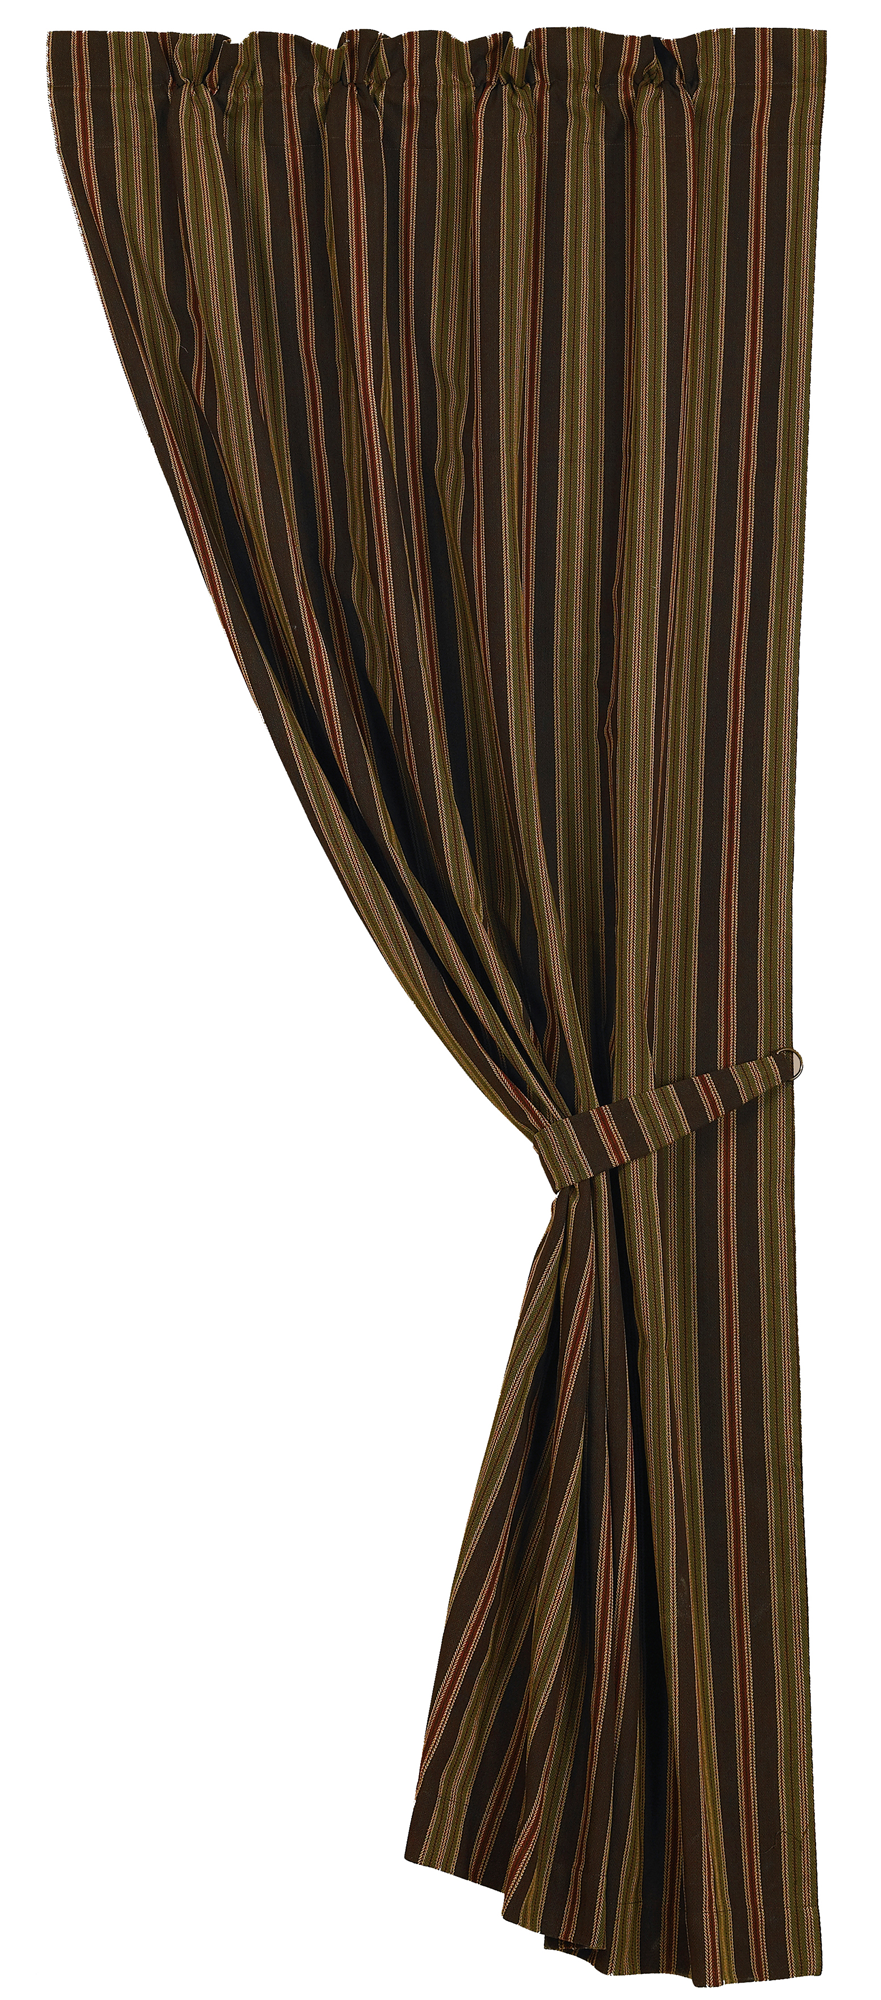 LG1849C - Striped Curtain - Western Bedding by HiEnd Accents